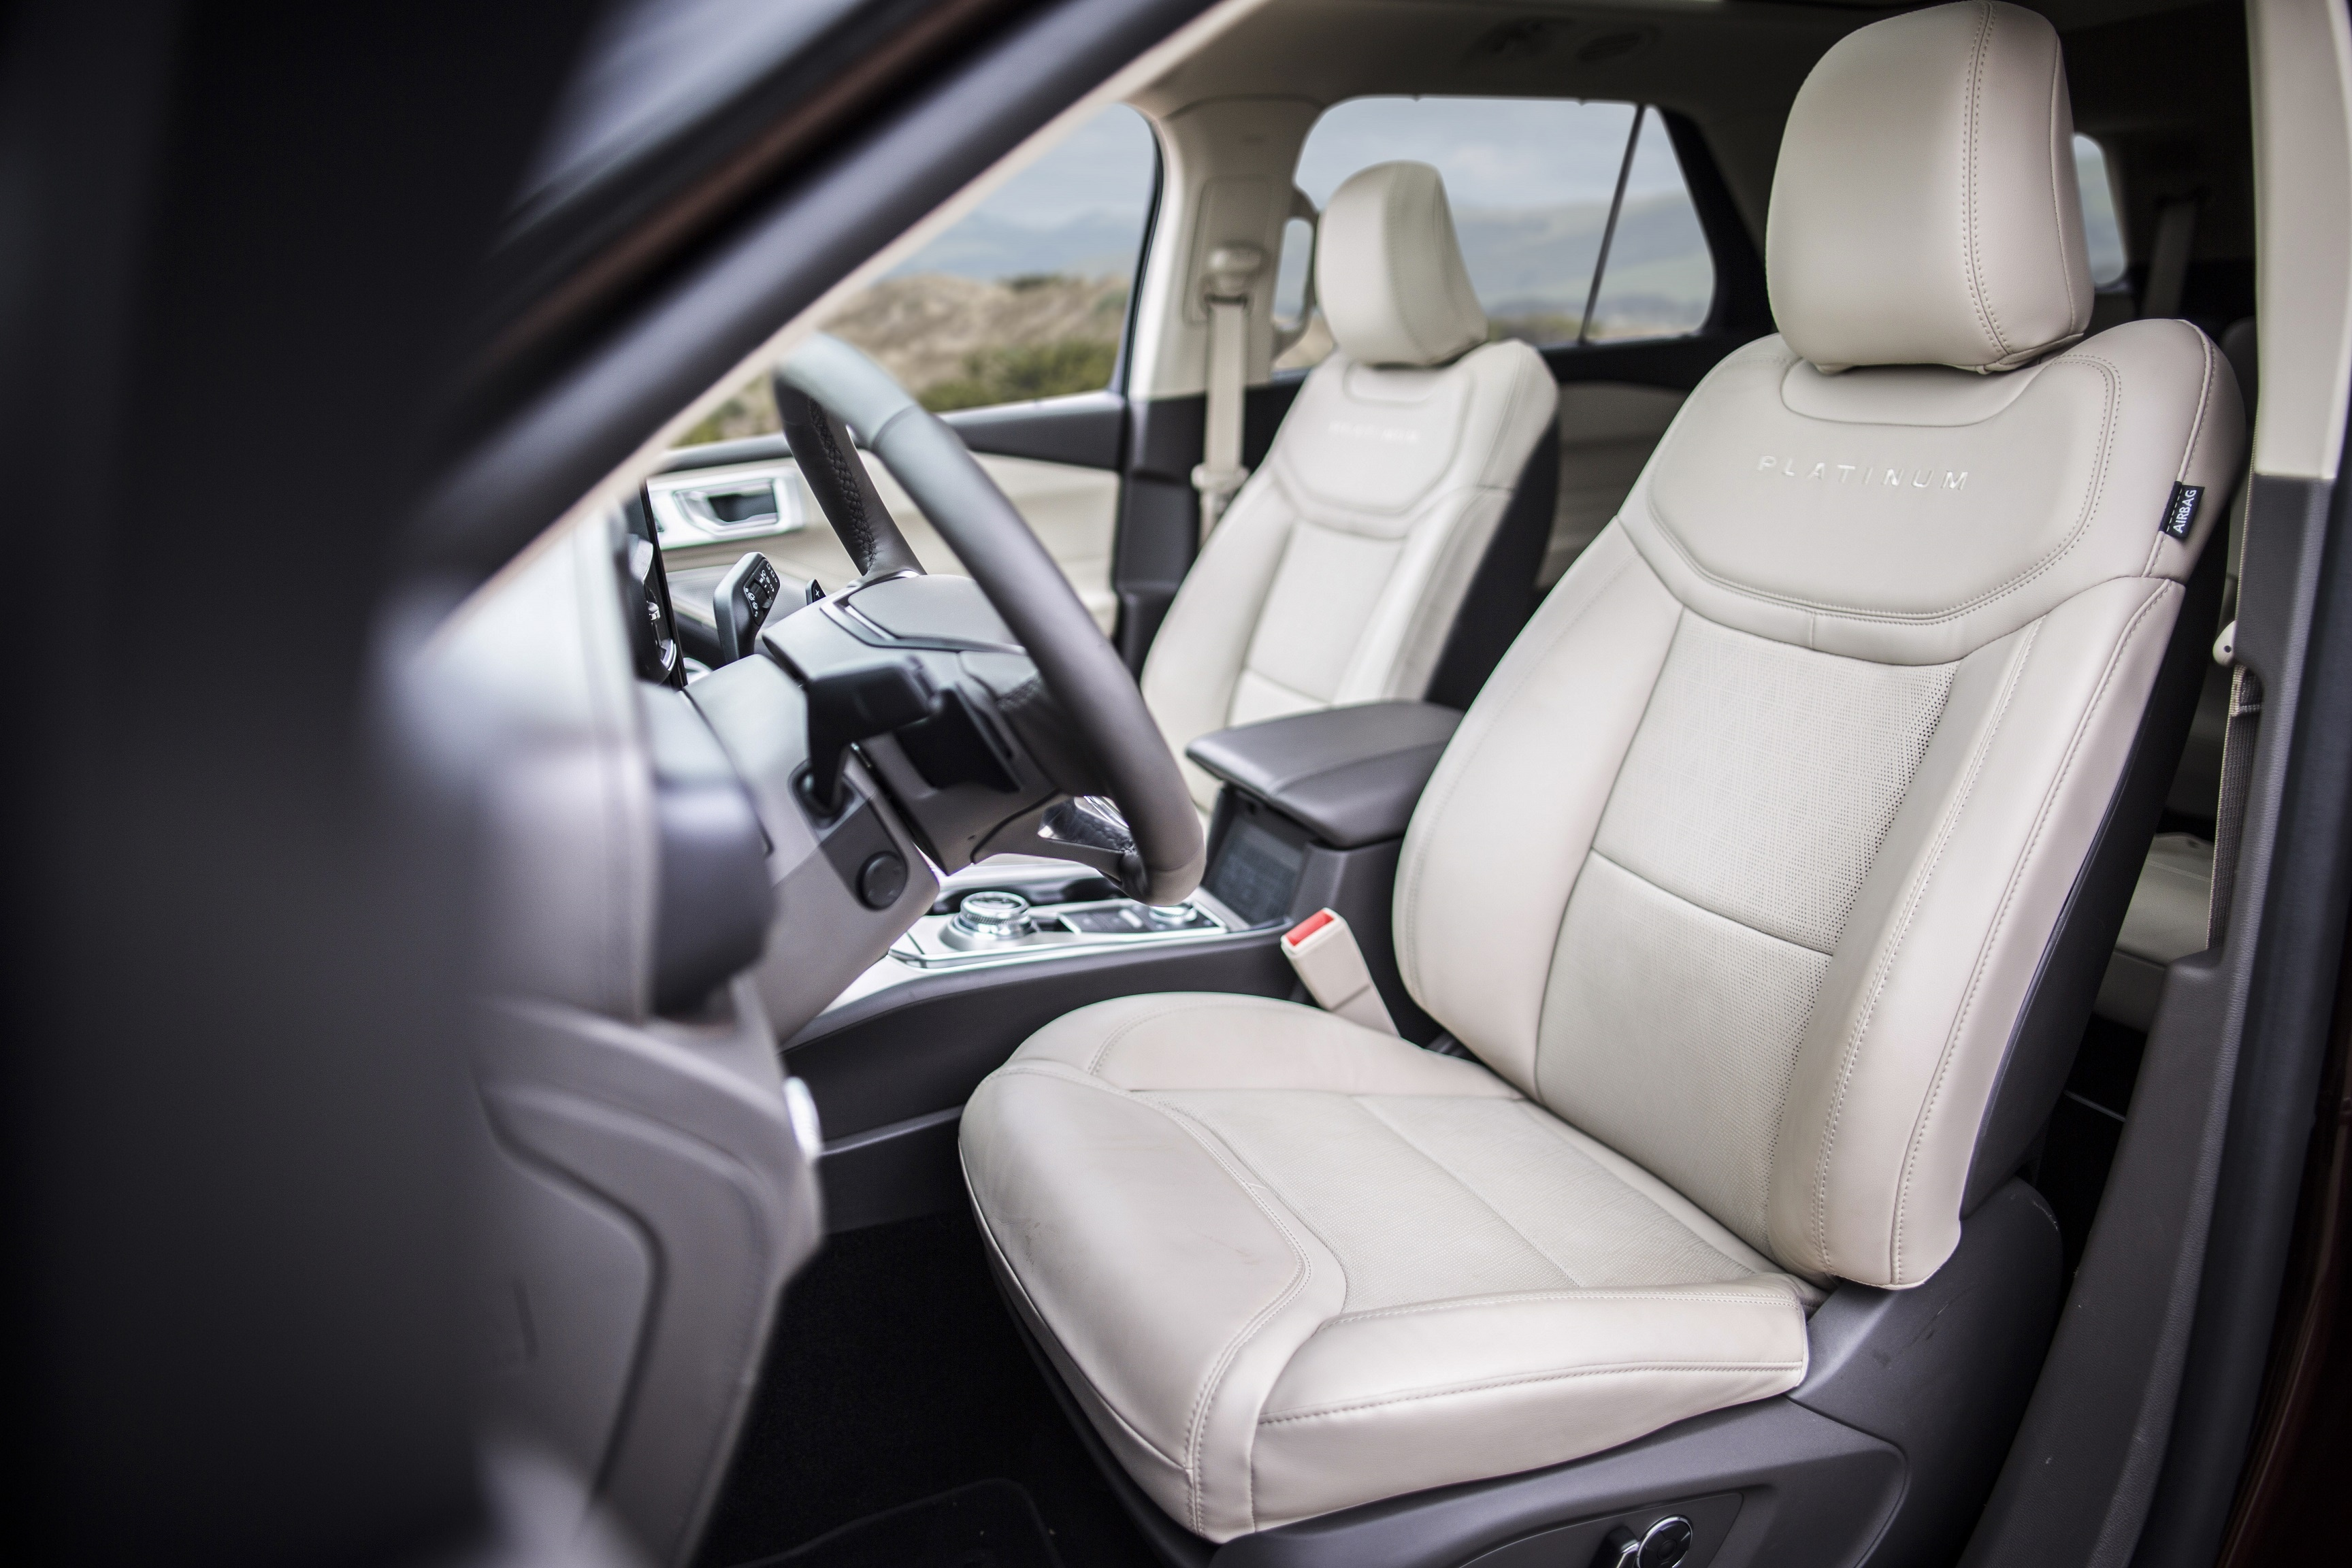 Ford Develops Cure For Those Road Trip Blues With Comfortable, Stylish Front Seats In All-New Ford Explorer